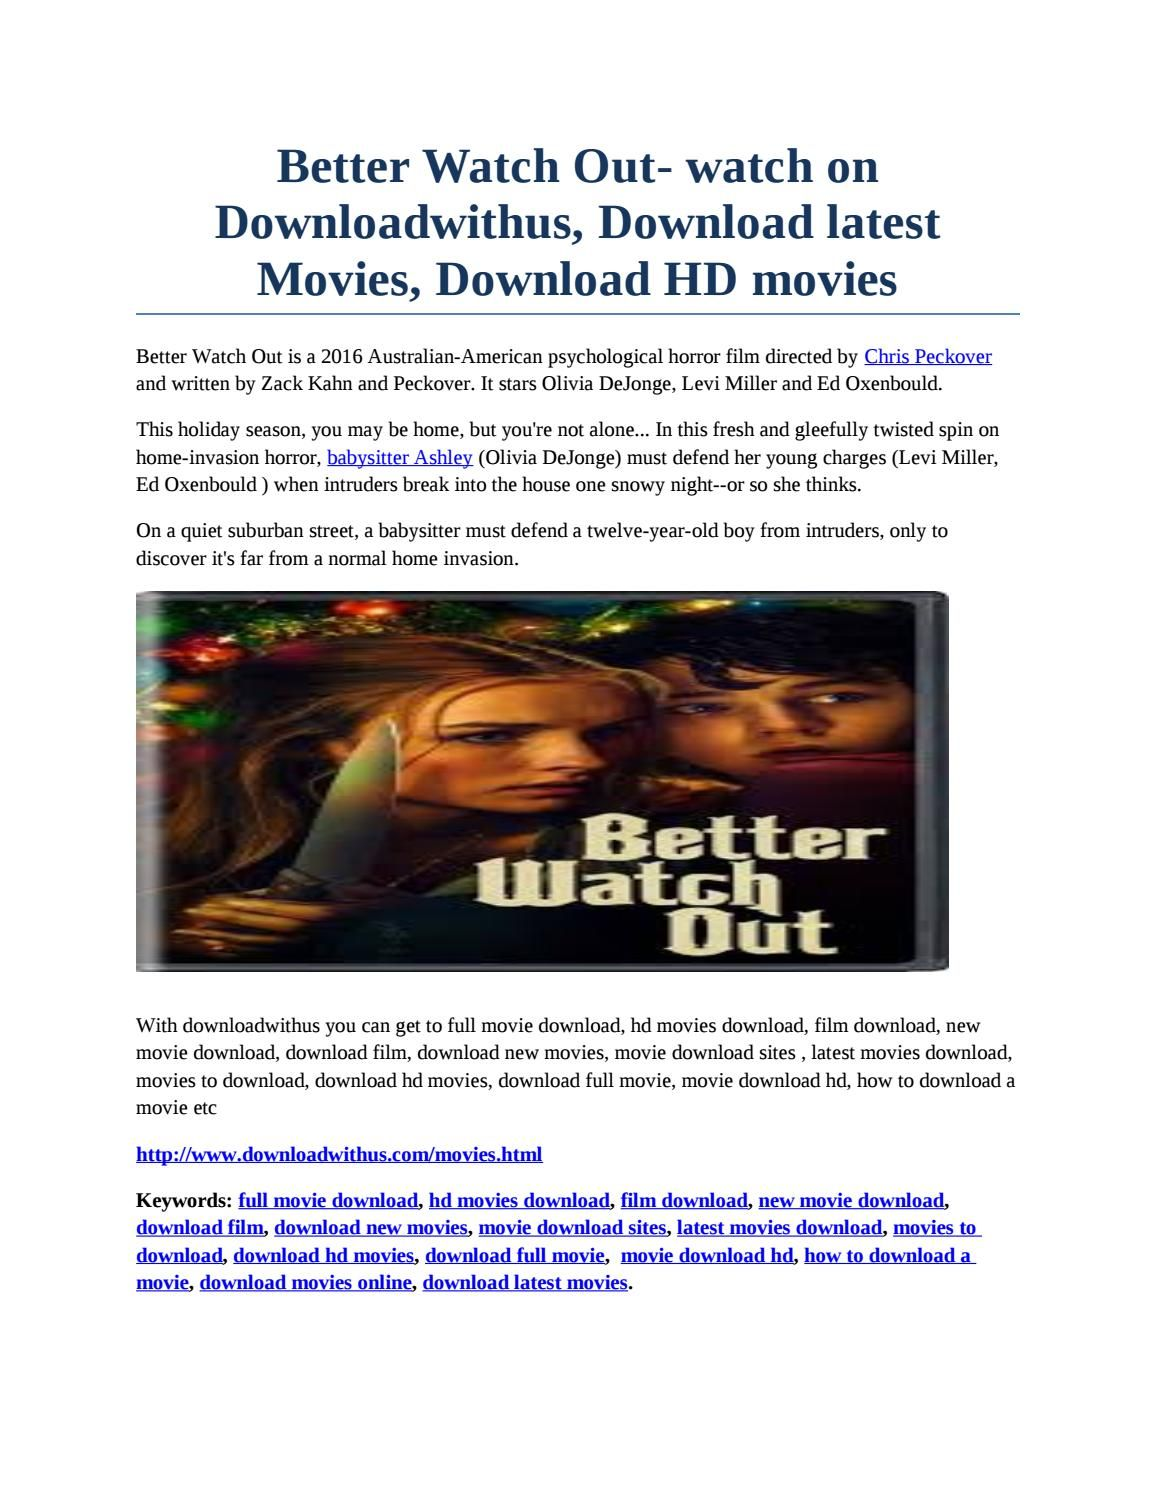 better watch out- watch on downloadwithus, download latest movies